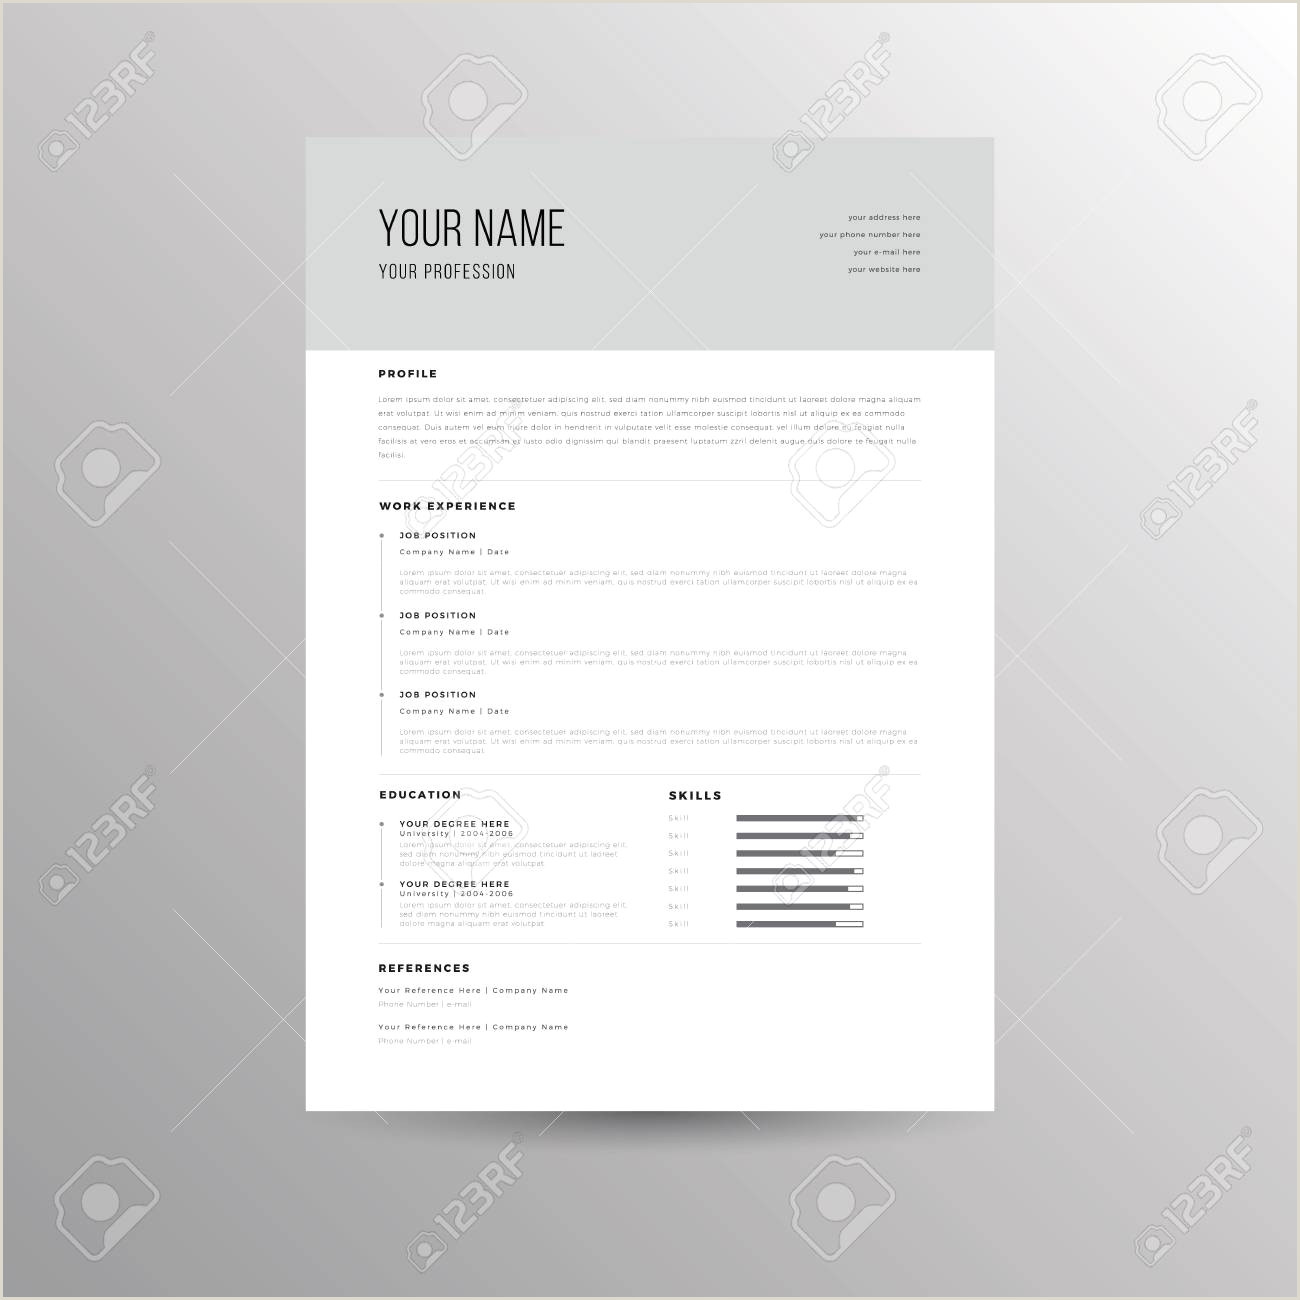 Resume Format For Company Job Cv Resume Template For Job Applications